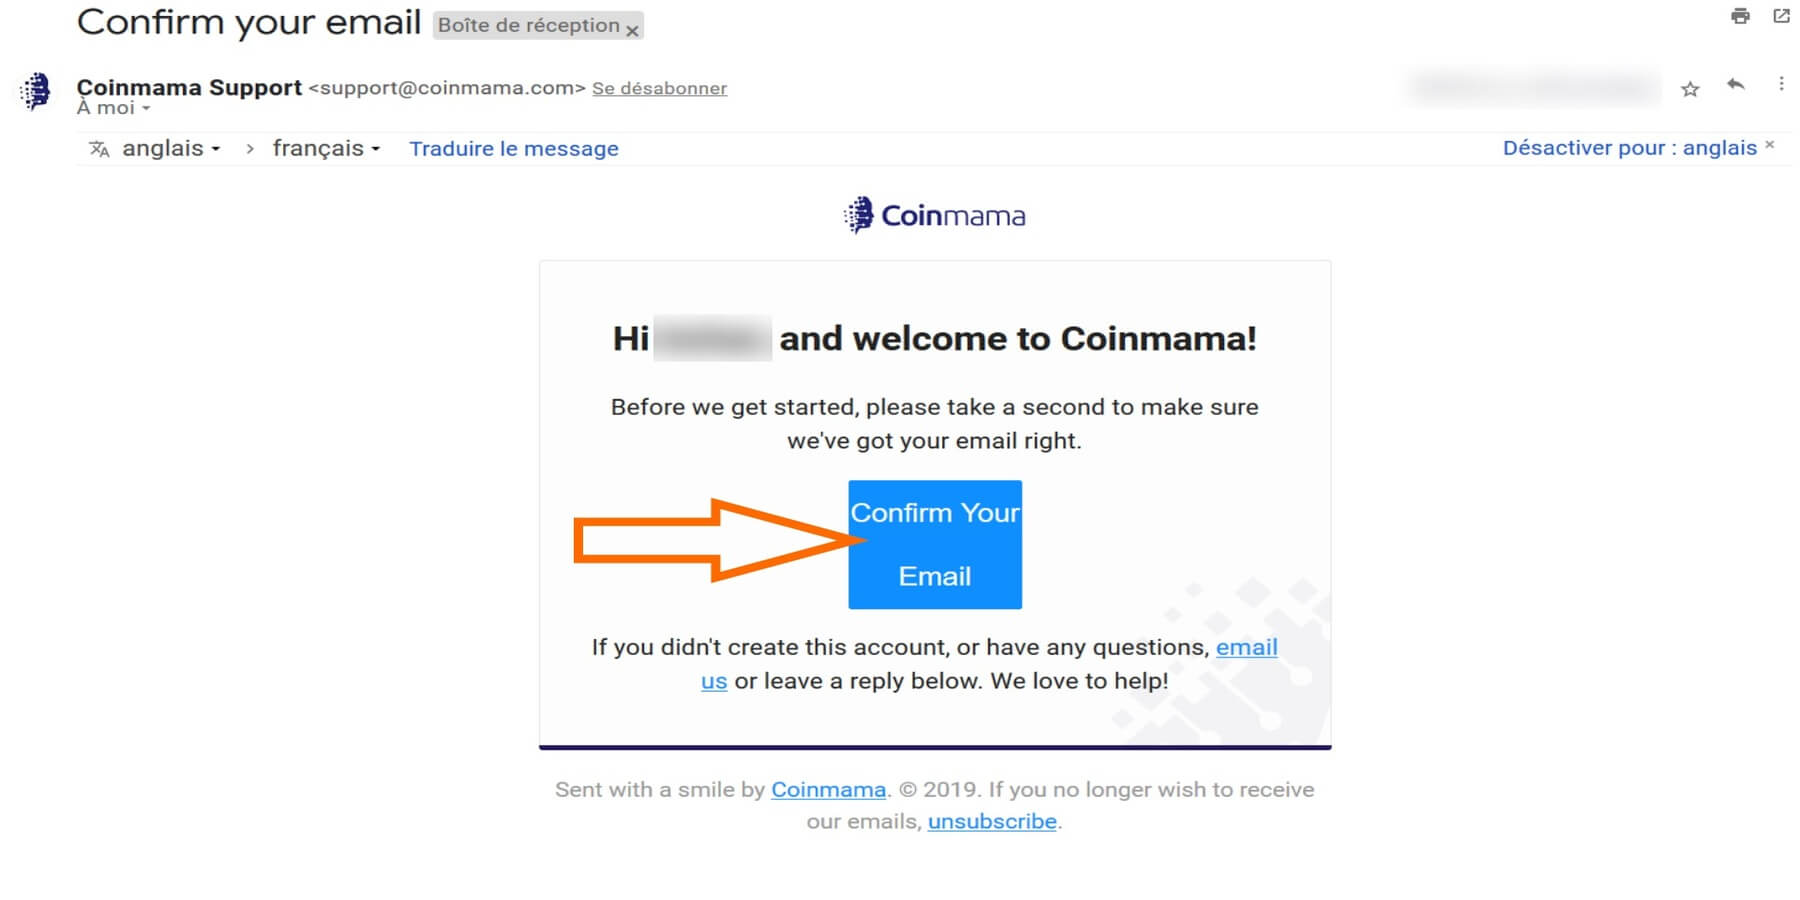 Confirmer mail Coinmama